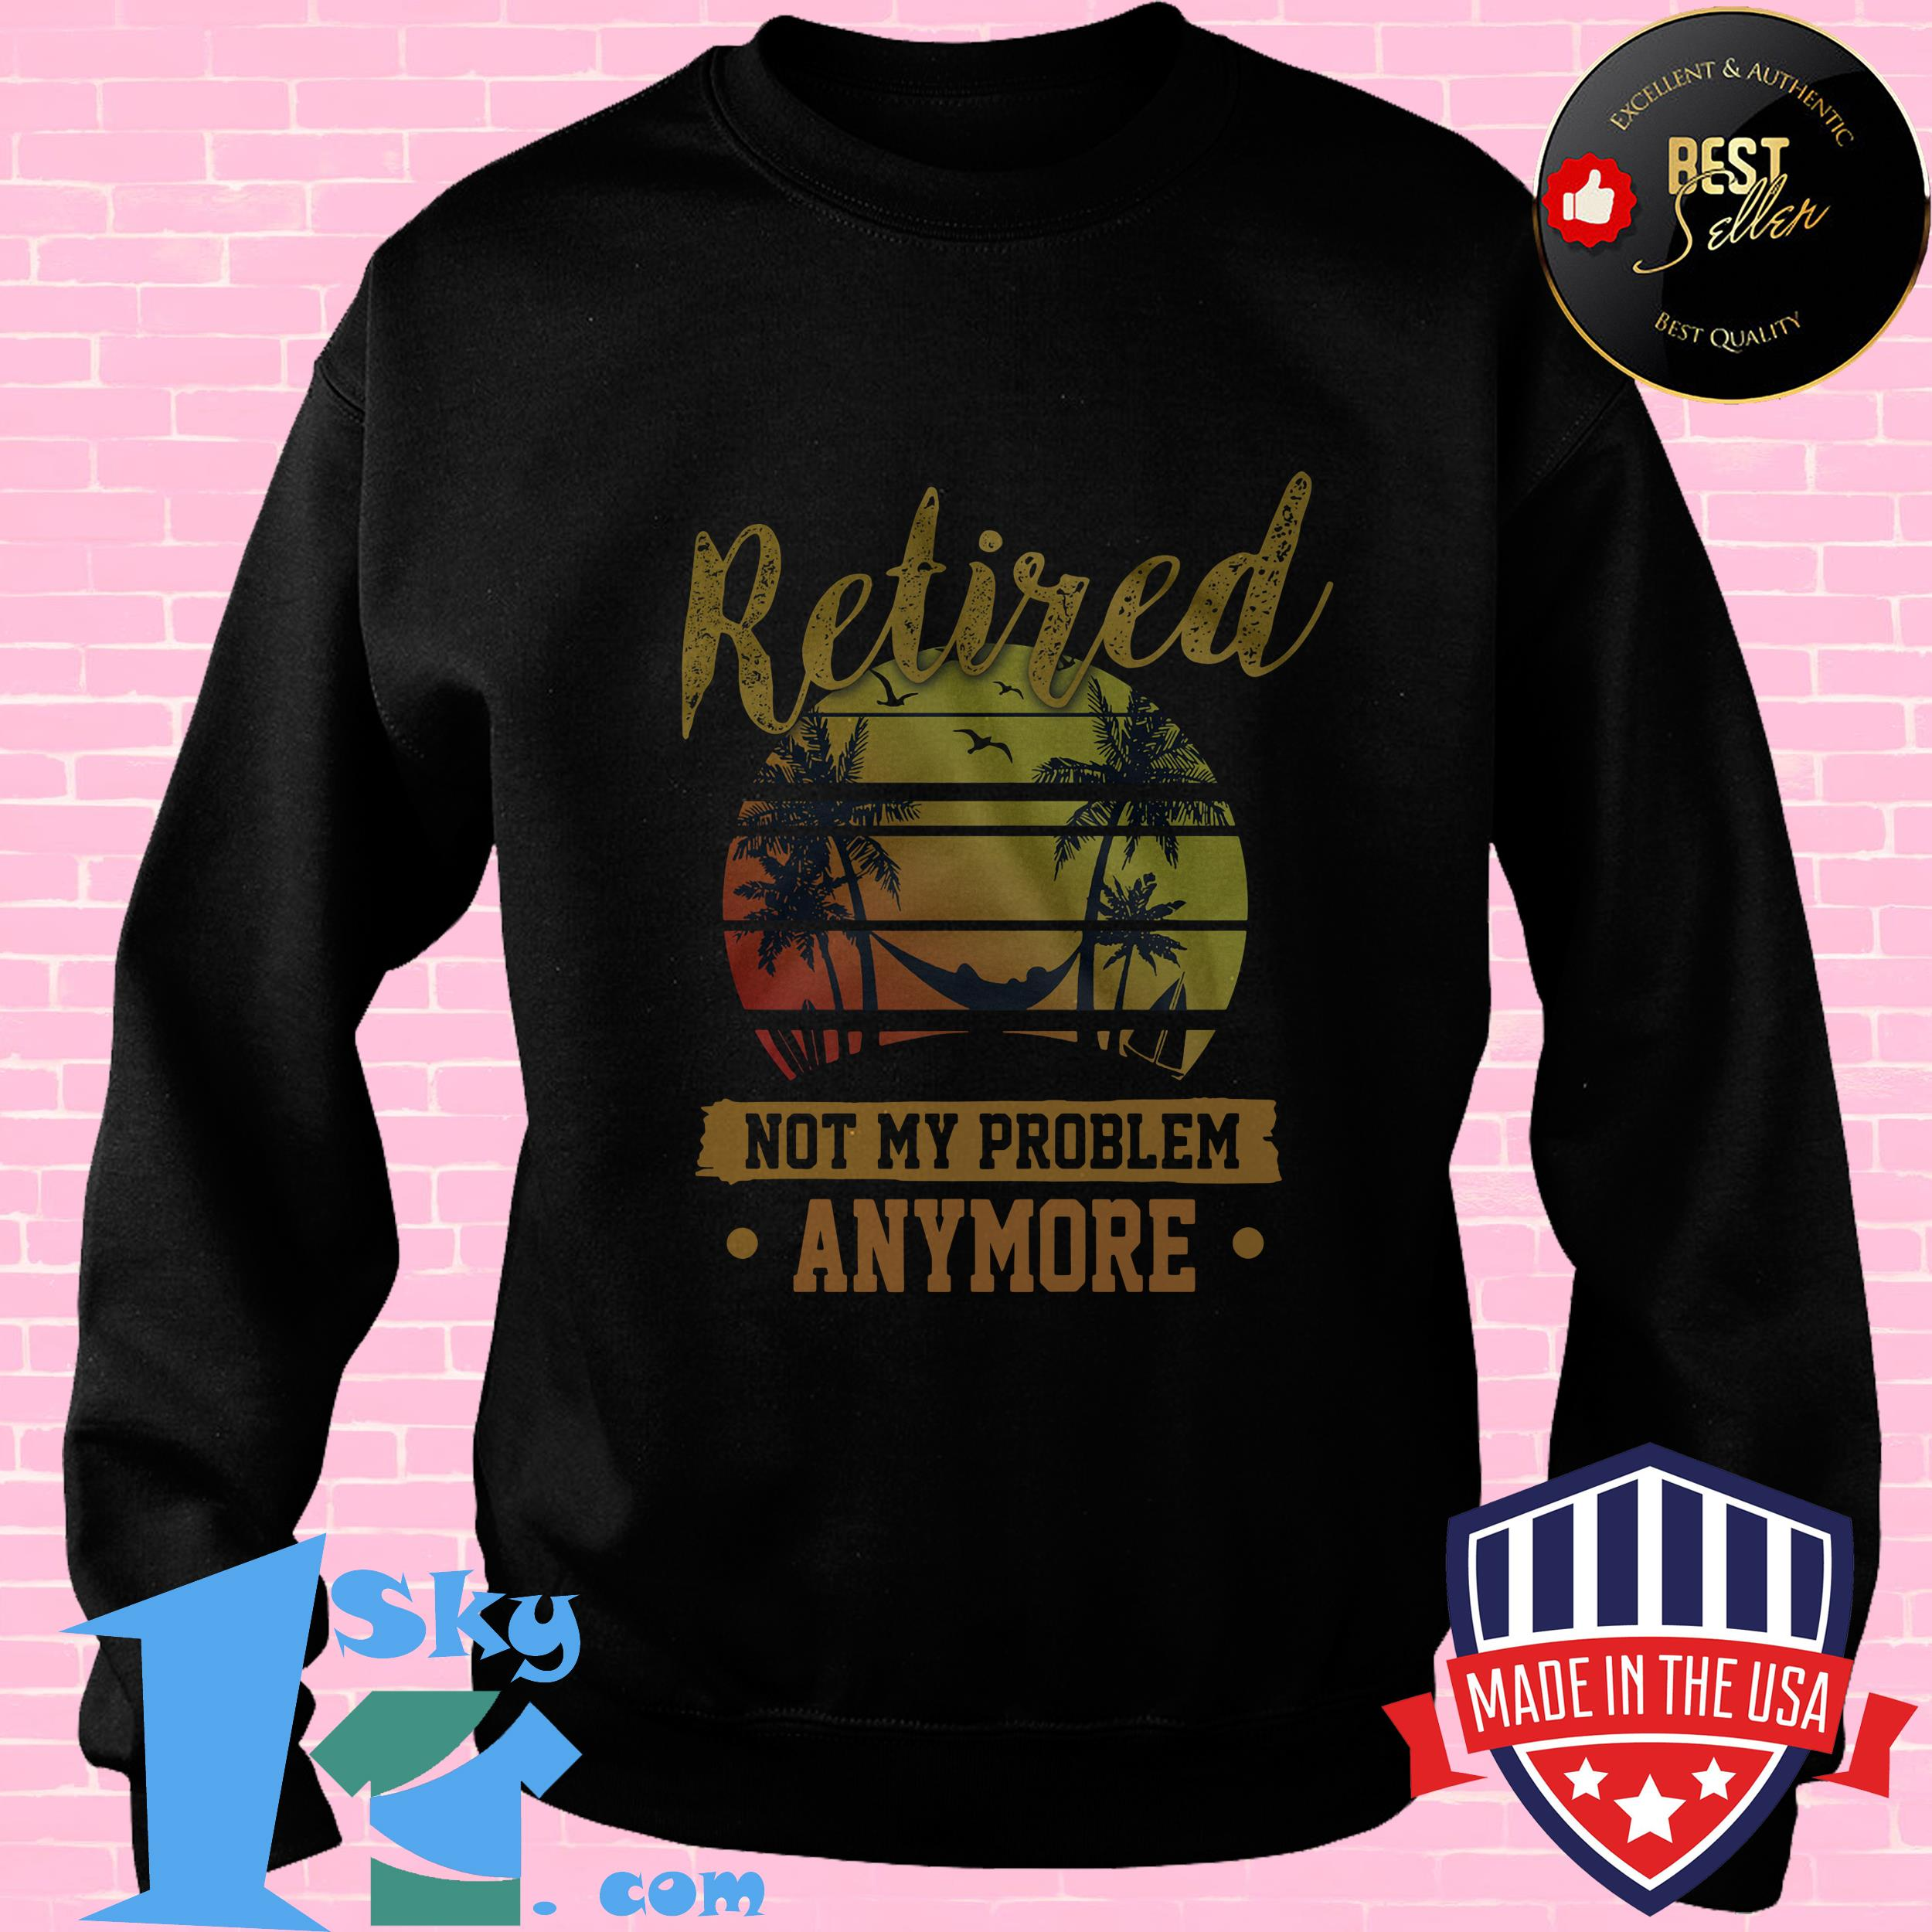 retired not my problem anymore vintage sweatshirt - Retired Not My Problem Anymore Vintage shirt